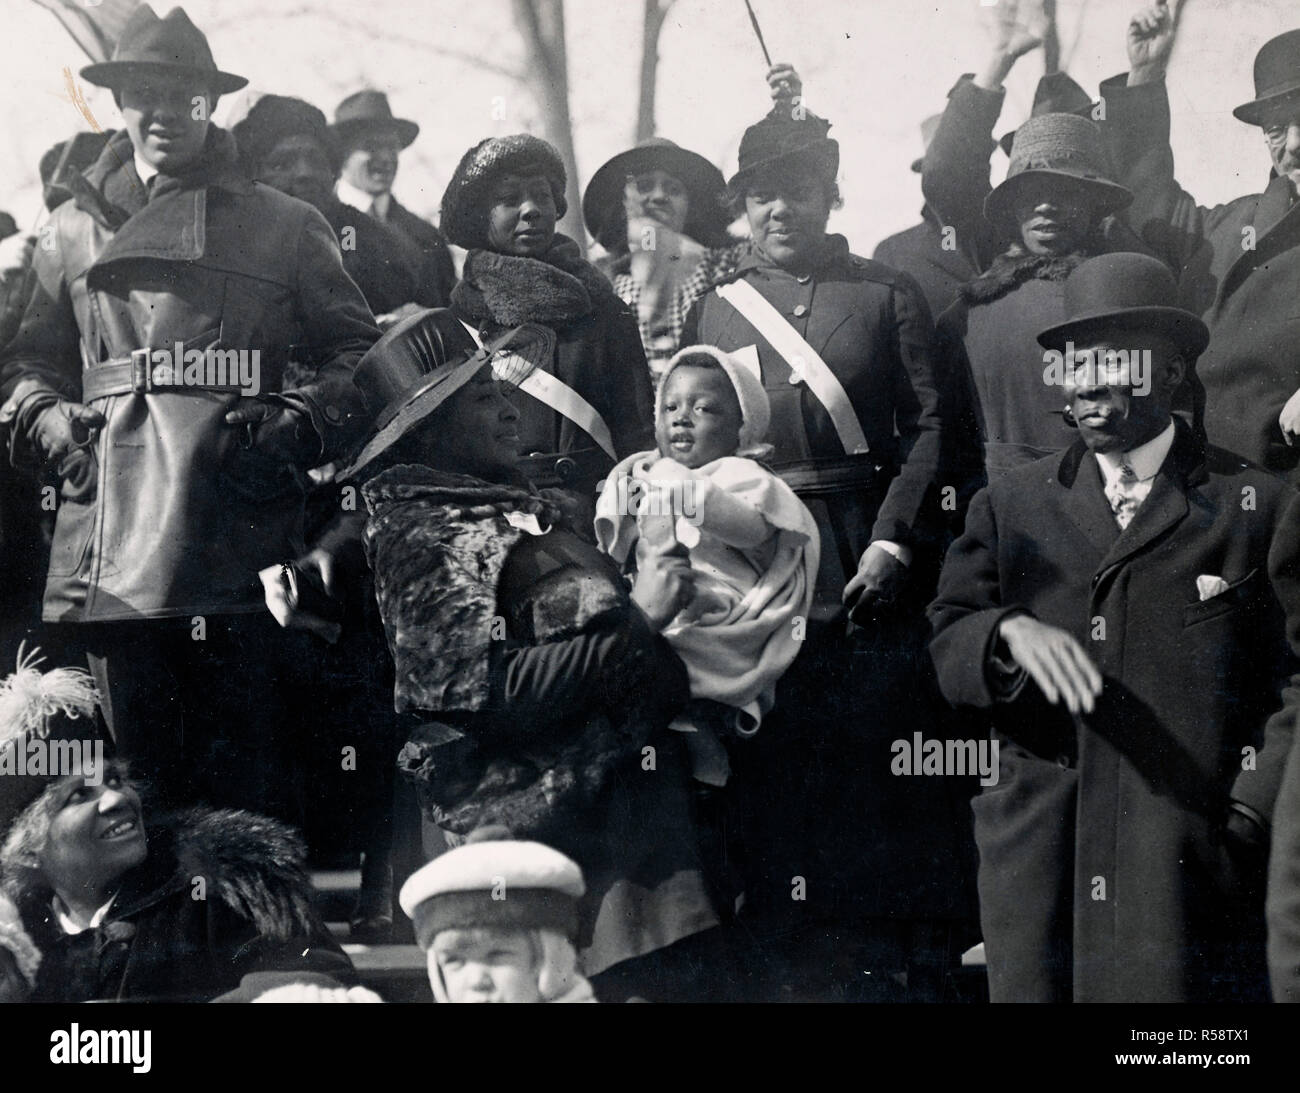 WW I Photos - Colored / African American Troops - Relatives and Friends Cheering the 369the Infantry as the Pass in Parade. New York City's colored population turned out to greet the heroes of the 369th Infantry, the old 15th of New York City, colored fighters who earned all the glories of war in France 2/17/1919 - Stock Image